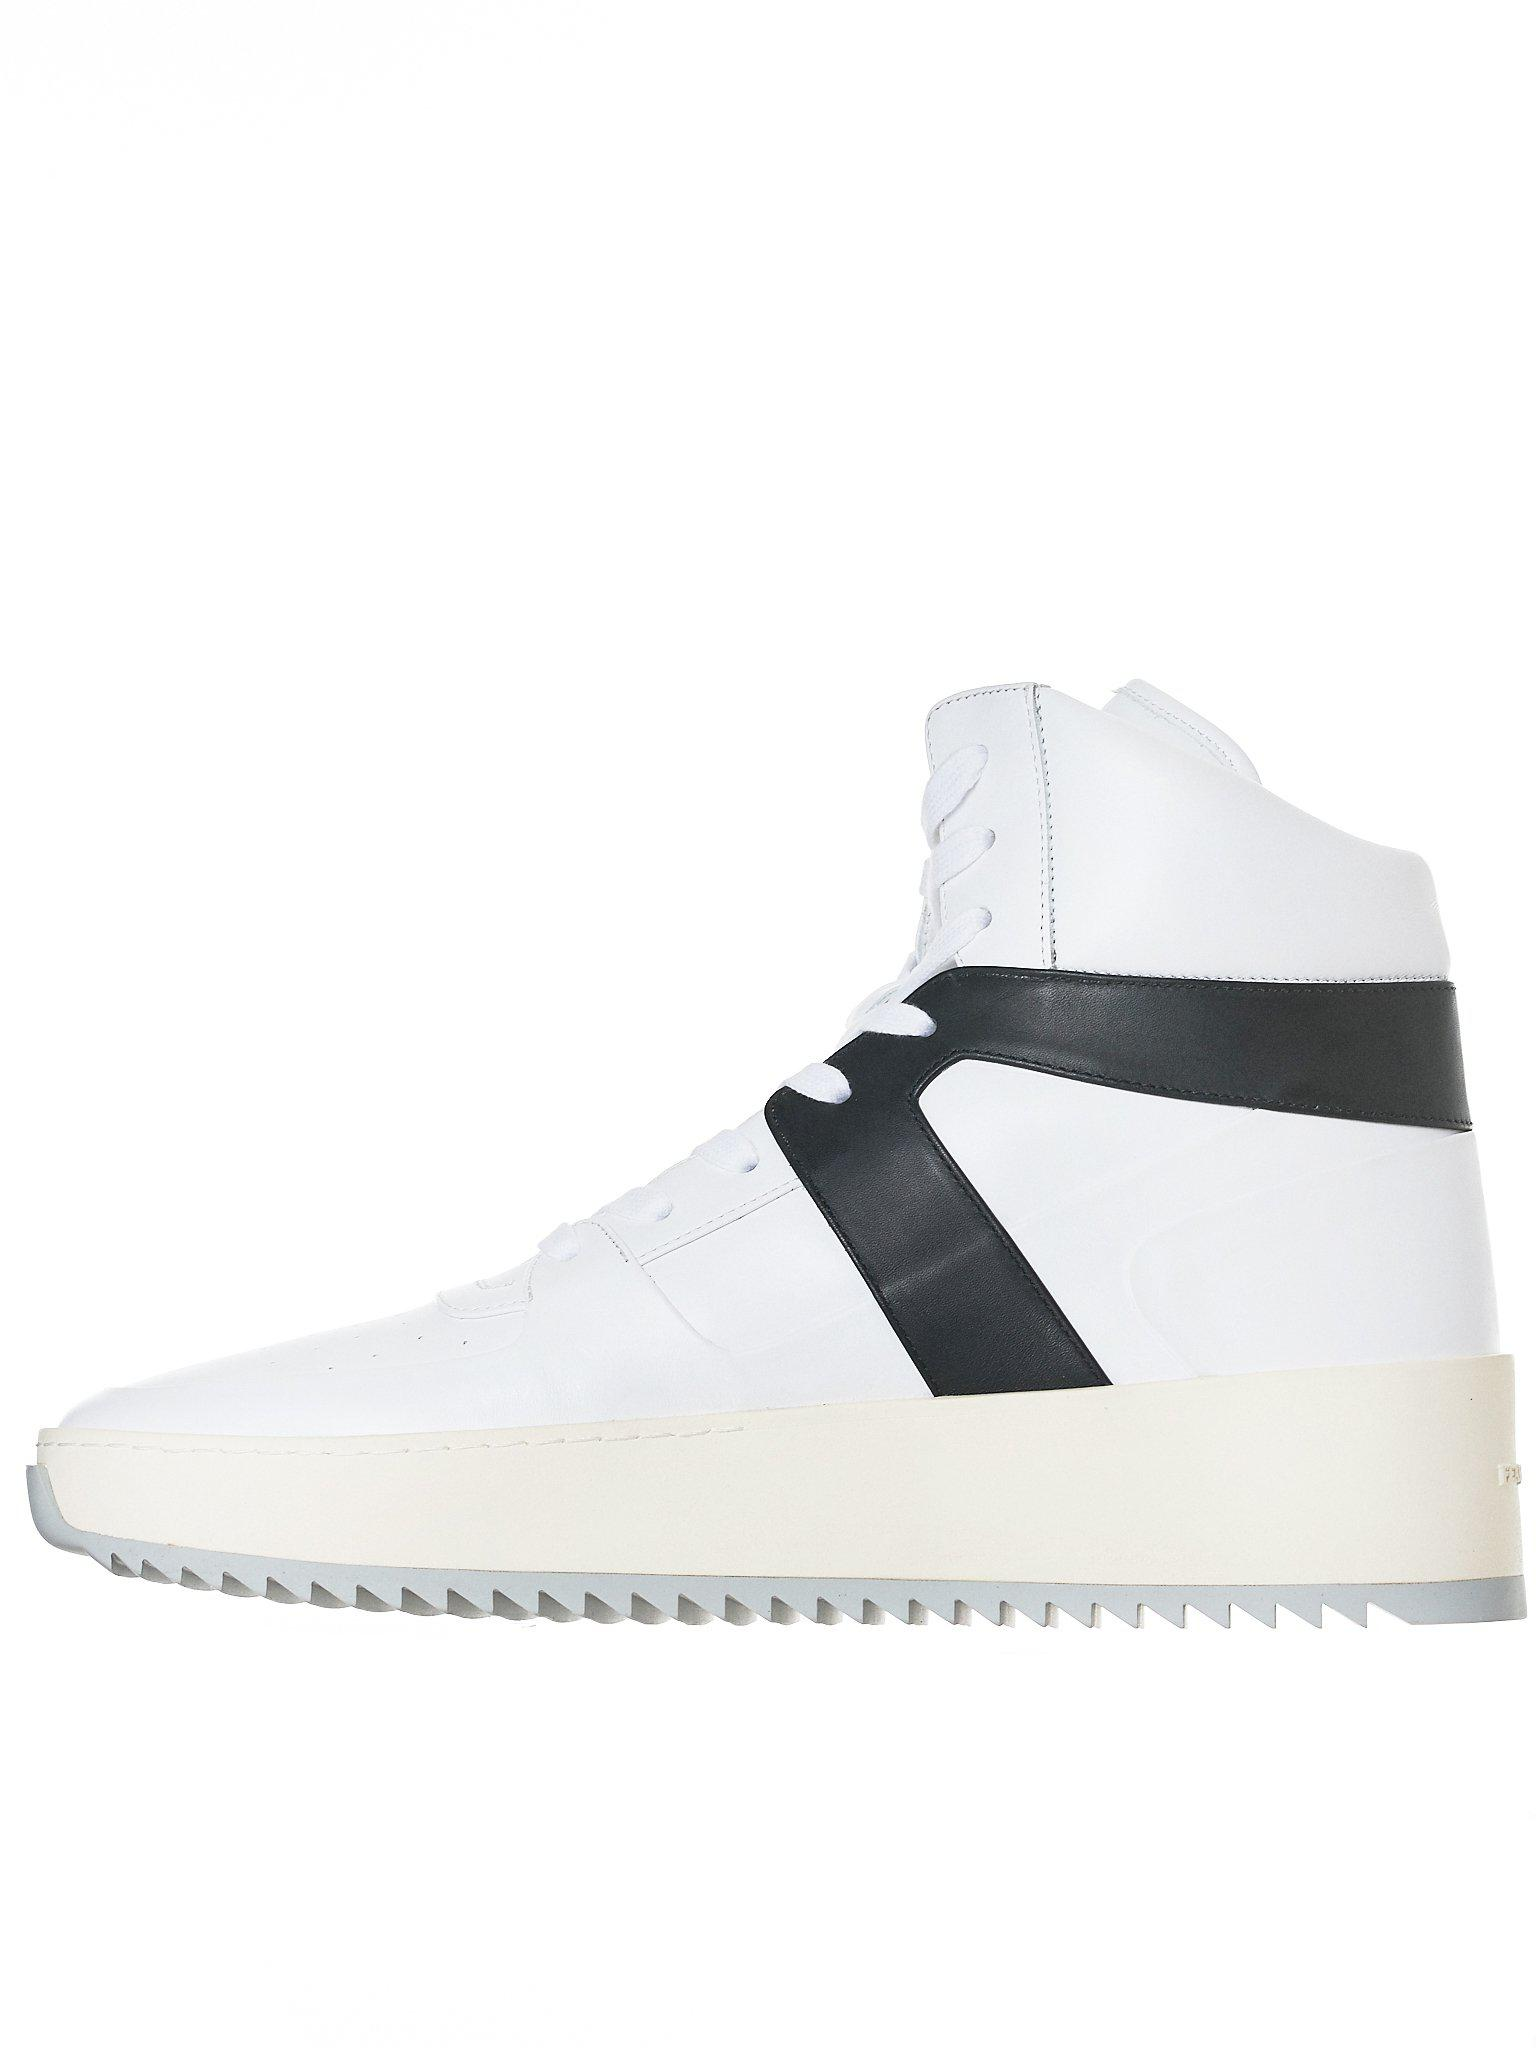 Basketball Panelled Leather High-top Sneakers - WhiteFear of God cW5qa5wuY